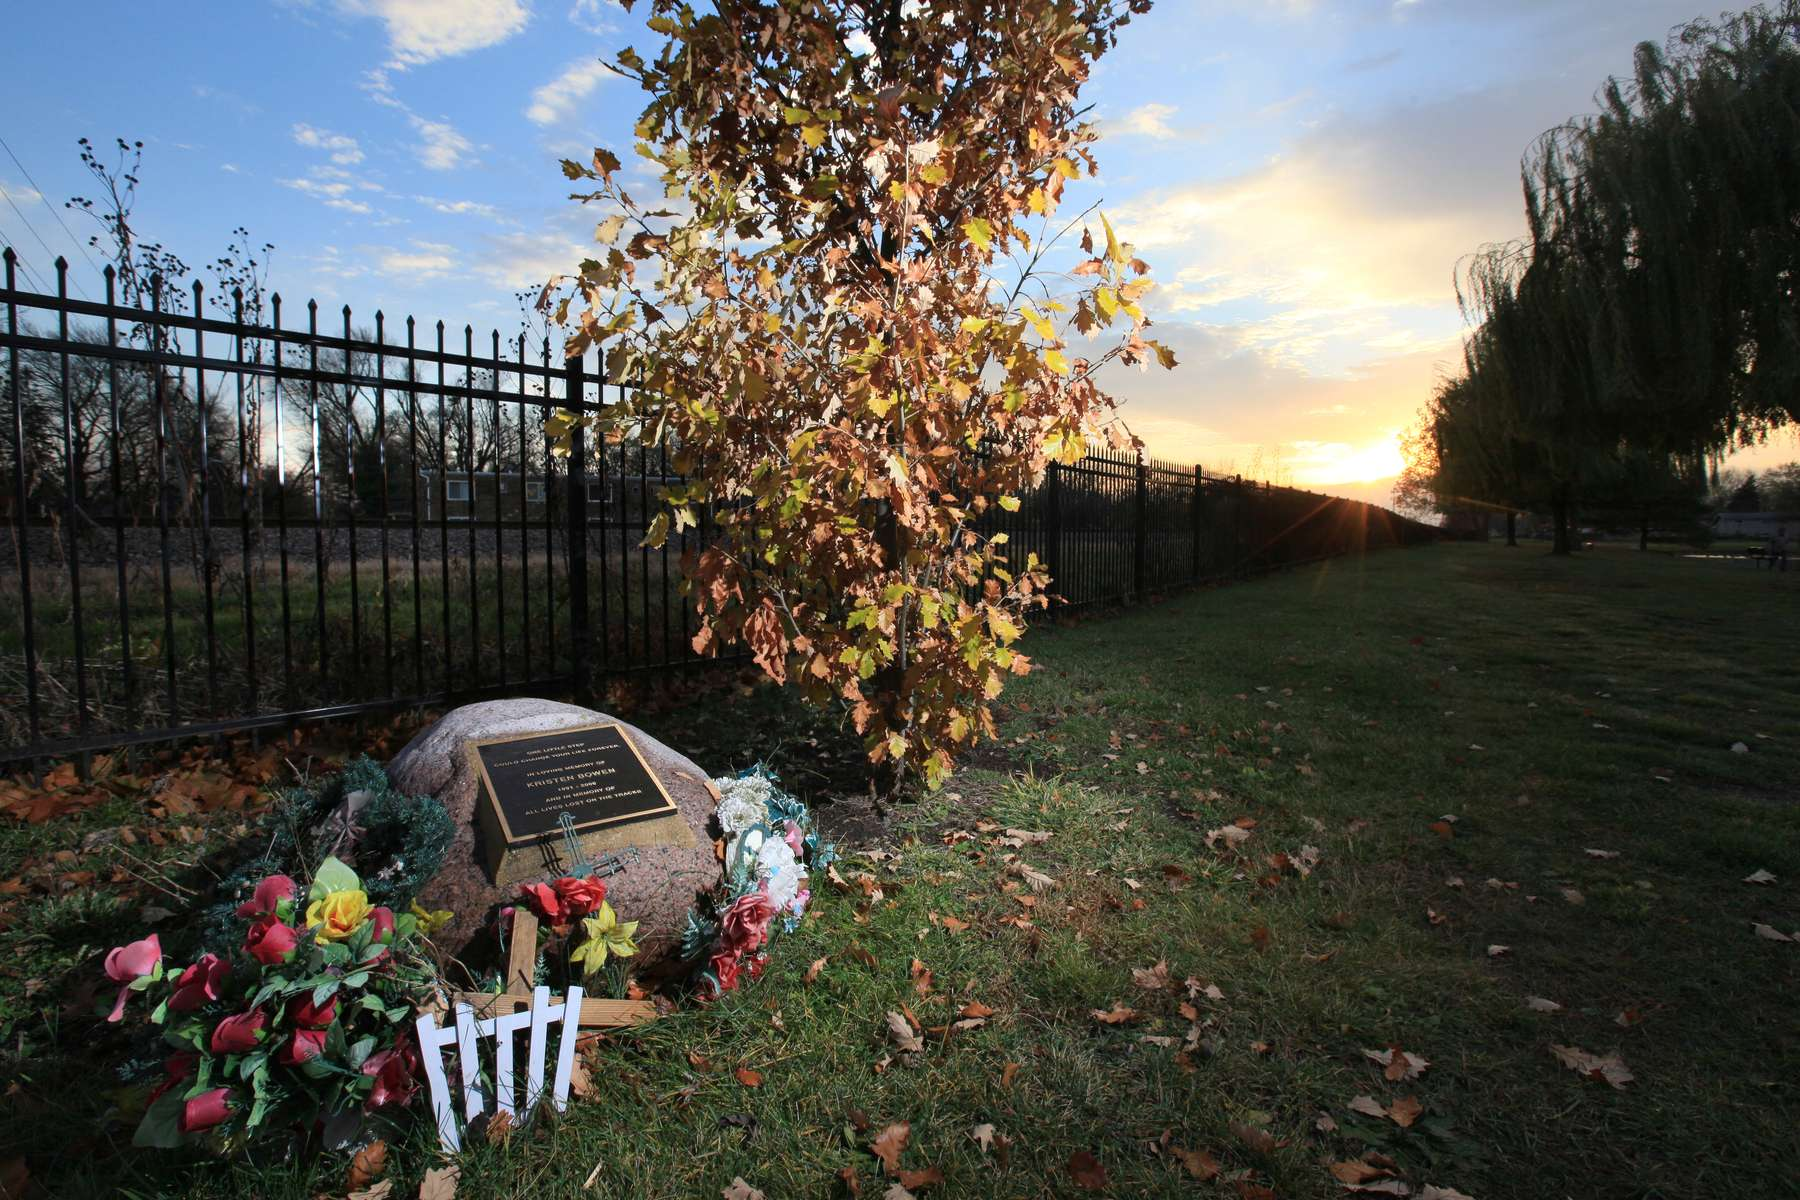 A memorial for Kristen Bowen, who was struck and killed by a train as she crossed the tracks walking from her home to this park in Villa Park, Ill. in 2006, sits beside a fence that now stands between the park and the tracks.  Bowen's death was used to rally the support of local residents to put up fences along train tracks in the city.Photo By David Carson, dcarson@post-dispatch.com